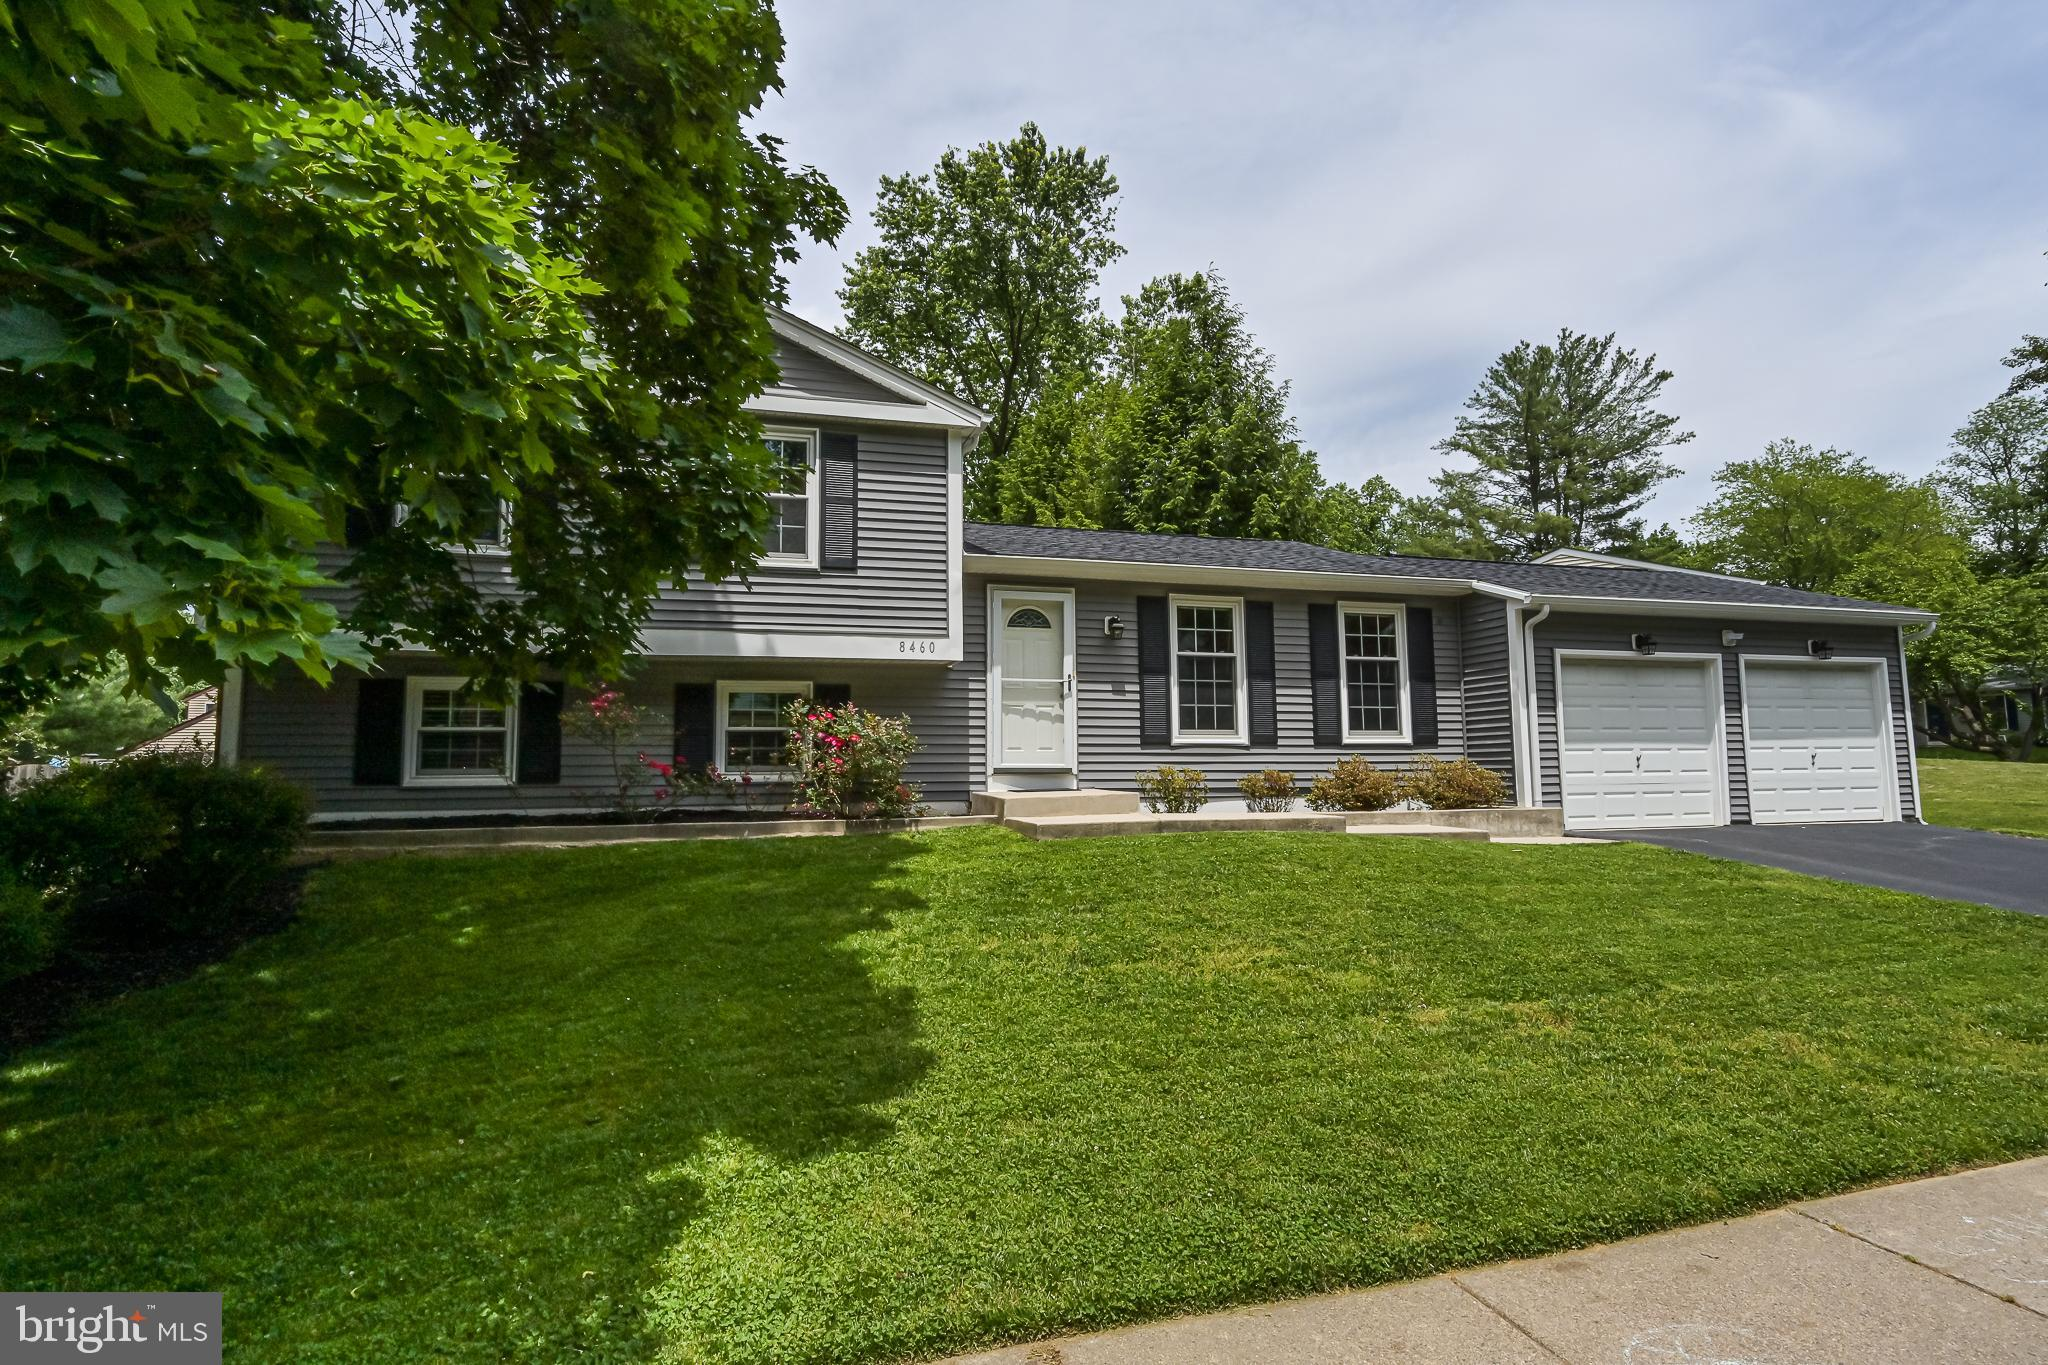 This gorgeous split-level home is located  on a cul-de-sac in the coveted Prosperity Heights community in Annandale, Virginia. Centrally located near the Capital Beltway (495), I-66, Route 50, and the Dunn-Loring Metro Station, this home provides convenient access for any commute, and yet has the feel of a quiet suburb, away from the hustle and bustle. This home features an open floor plan on the main level that includes an updated kitchen with stainless steel appliances, new stove and microwave in 2021, granite countertops, gleaming hardwood floors and custom pendant lights. A kitchen island overlooks the  living and dining space and is perfect for entertaining. A sliding door from the dining room leads to the deck which overlooks the fully fenced, spacious backyard.  The upper level includes 3 bedrooms with newer carpet and two full bathrooms. The lower level family room has newer carpet and includes a cozy wood burning fireplace and access to the powder room. Unique to this home is a 4th bedroom suite which includes a private, full bathroom with double sinks. This versatile space provides walk out access to the backyard and new patio via French doors and can be used as an in-law suite, au pair/nanny accommodations, guestroom, or private office space. This home also includes a finished basement and two-car garage. Exterior siding, roof, shutters and gutters replaced in 2018. In addition to the neighborhood playground, this home is within walking distance to Eakin Park which boasts additional playgrounds, volleyball, tennis courts, a baseball field and pond as well as the Accotink Stream Valley trail, perfect for walking and biking. This amazing location is minutes away from the shops, restaurants and theater at the Mosaic District and Tysons Corner, and a short drive in either direction to the museums and sights of Washington, DC, Alexandria and Fairfax.